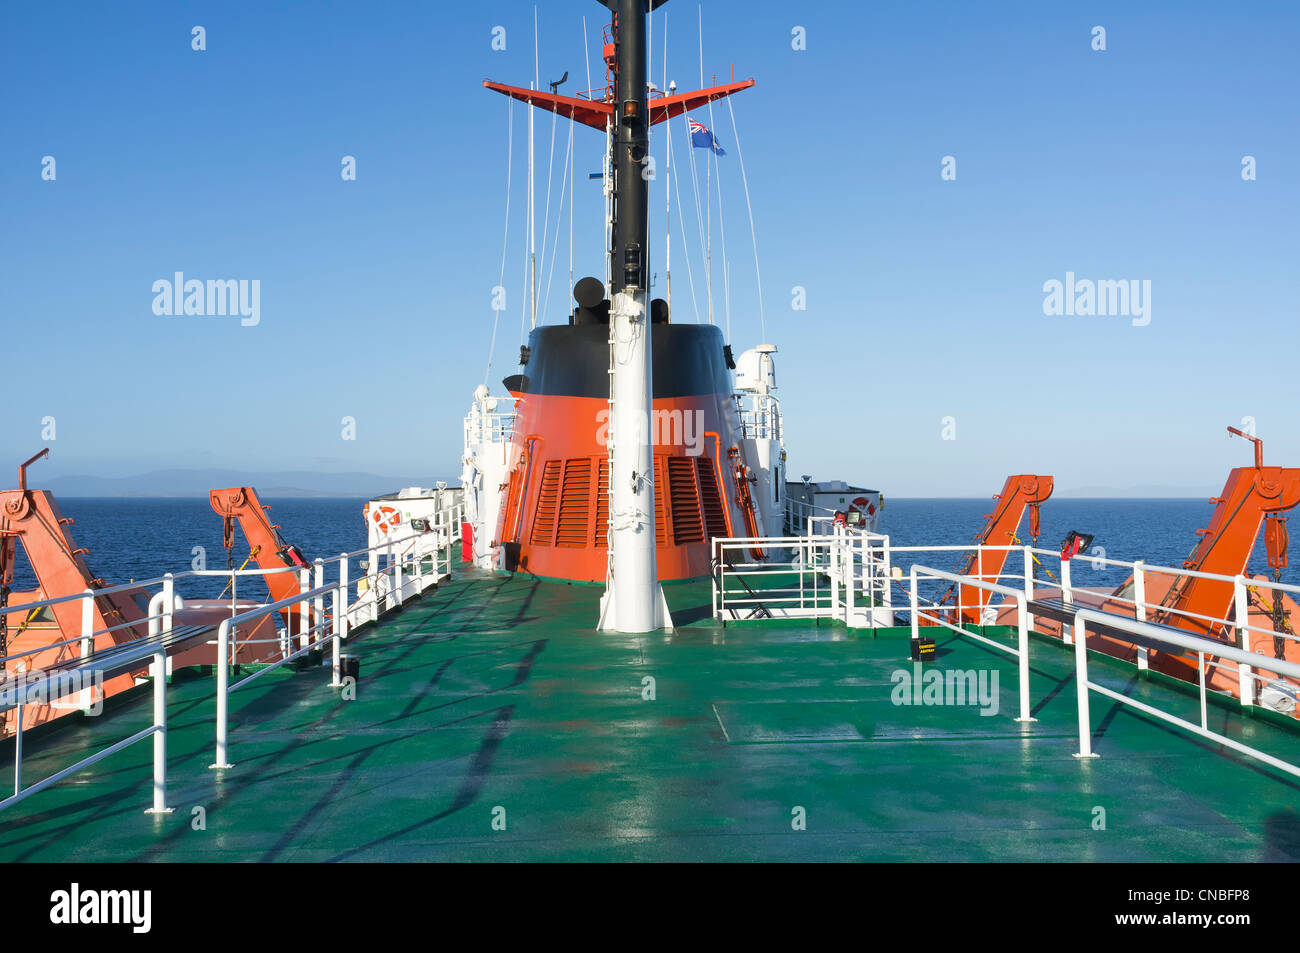 Sun deck of a cruise ship in the sub Antarctic regions, South Georgia - Stock Image